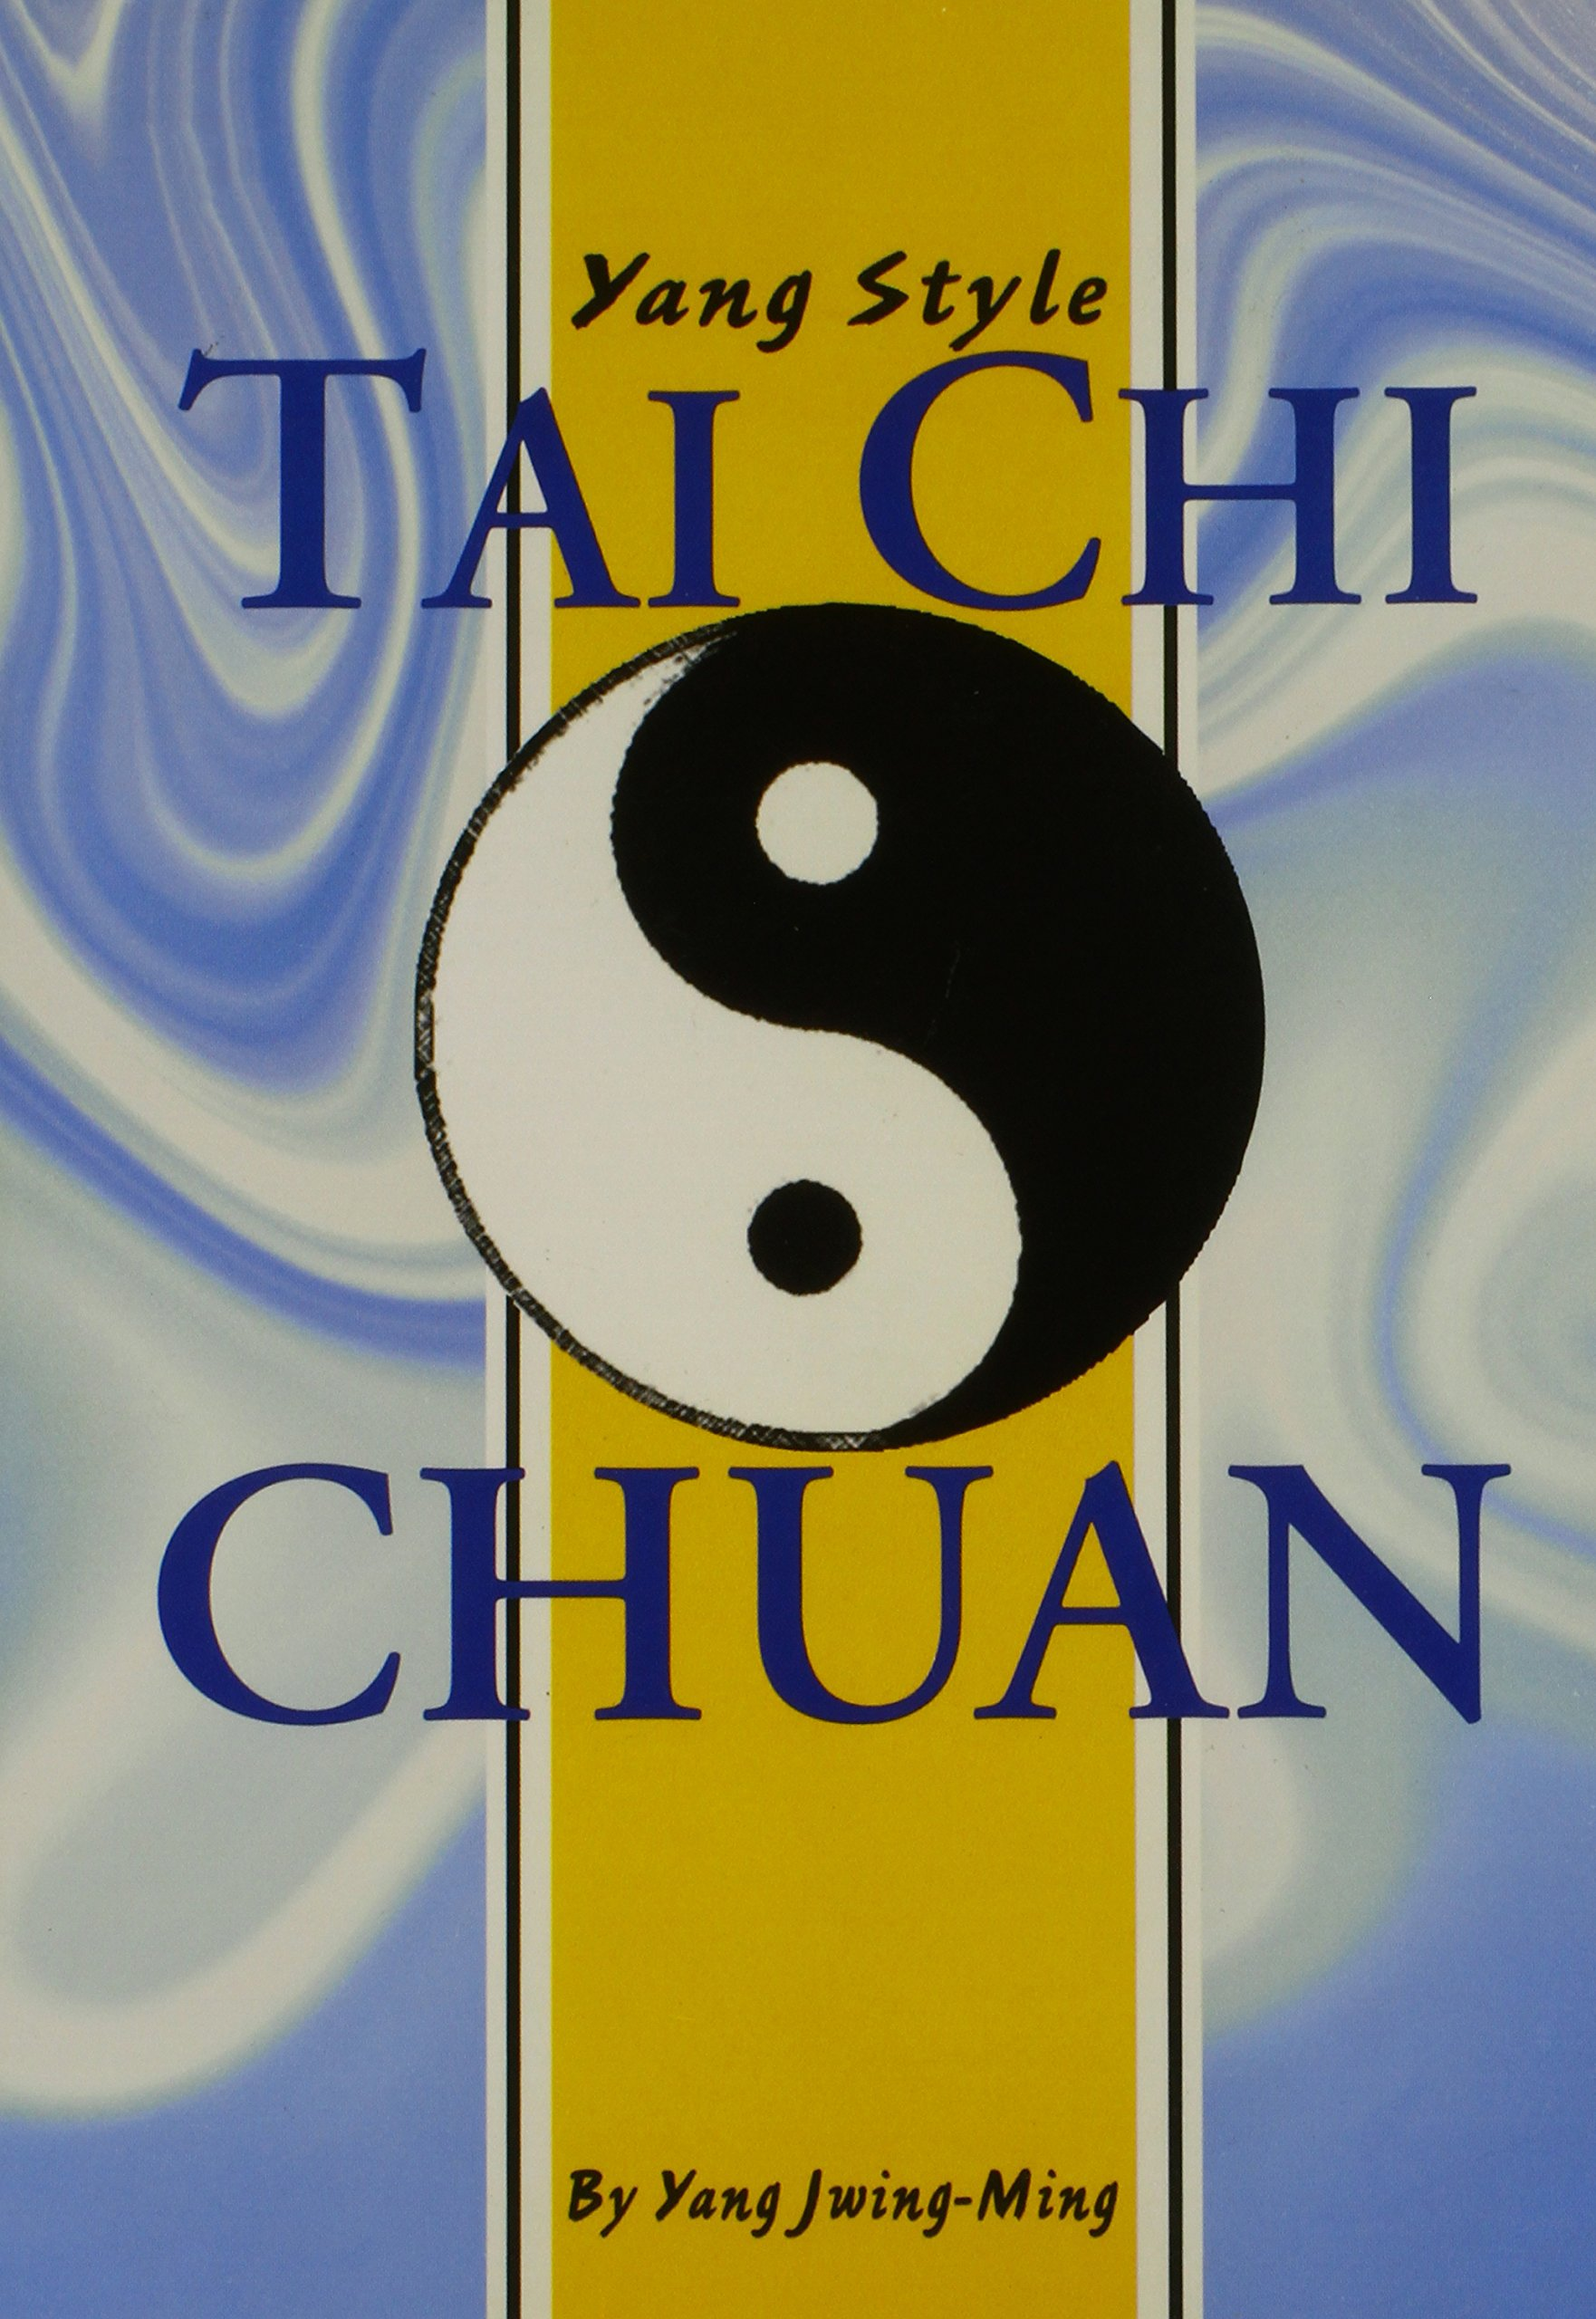 Yang Style Tai Chi Chuan (Unique Literary Books of the World)